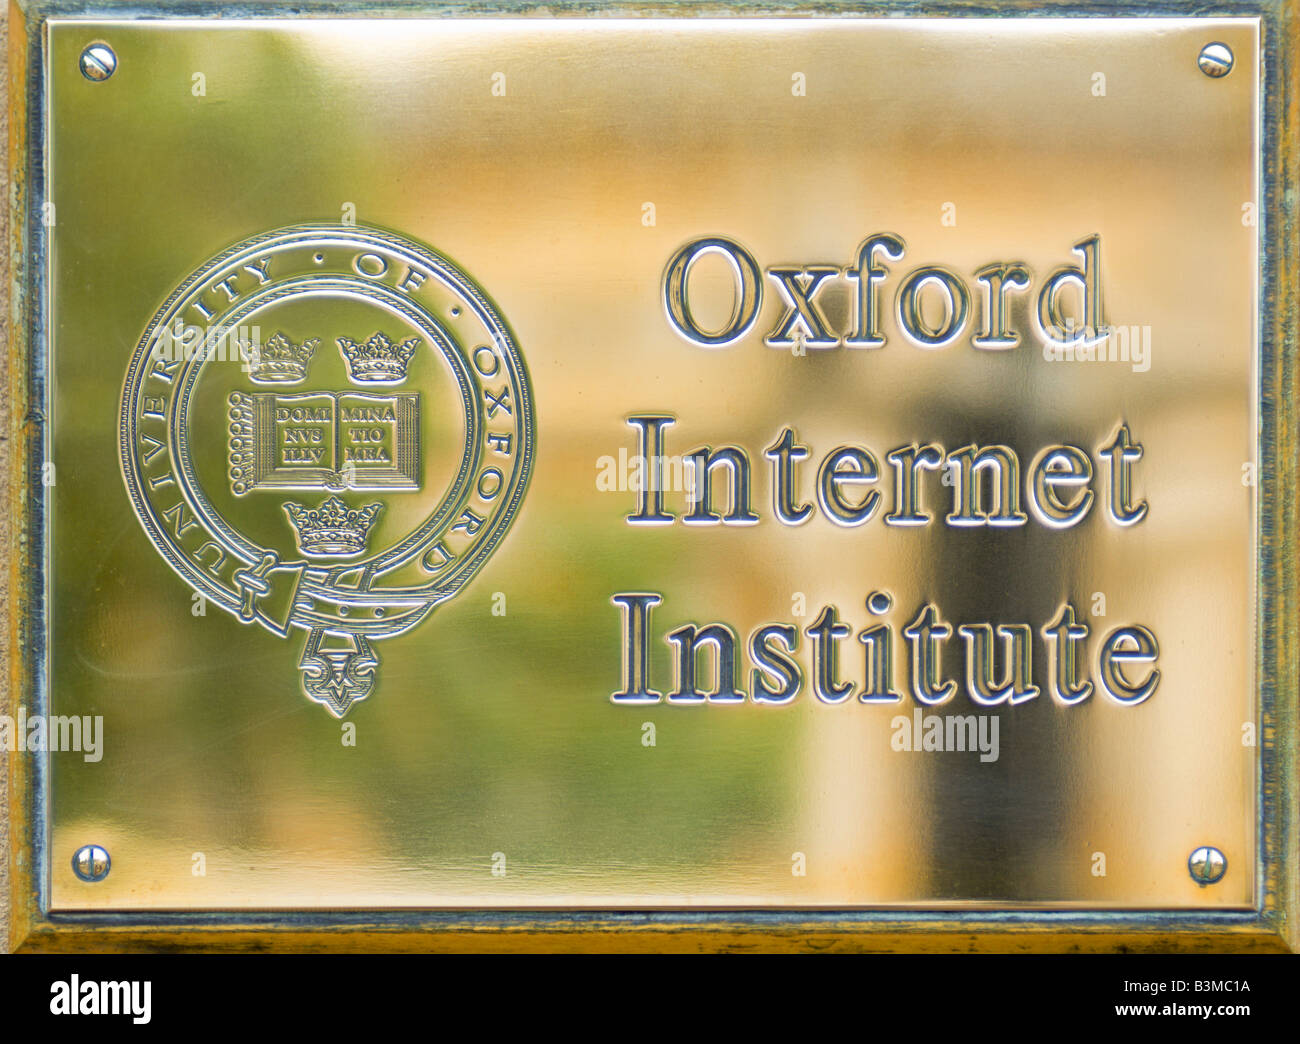 Brass plate sign outside the University of Oxford Internet Institute. - Stock Image